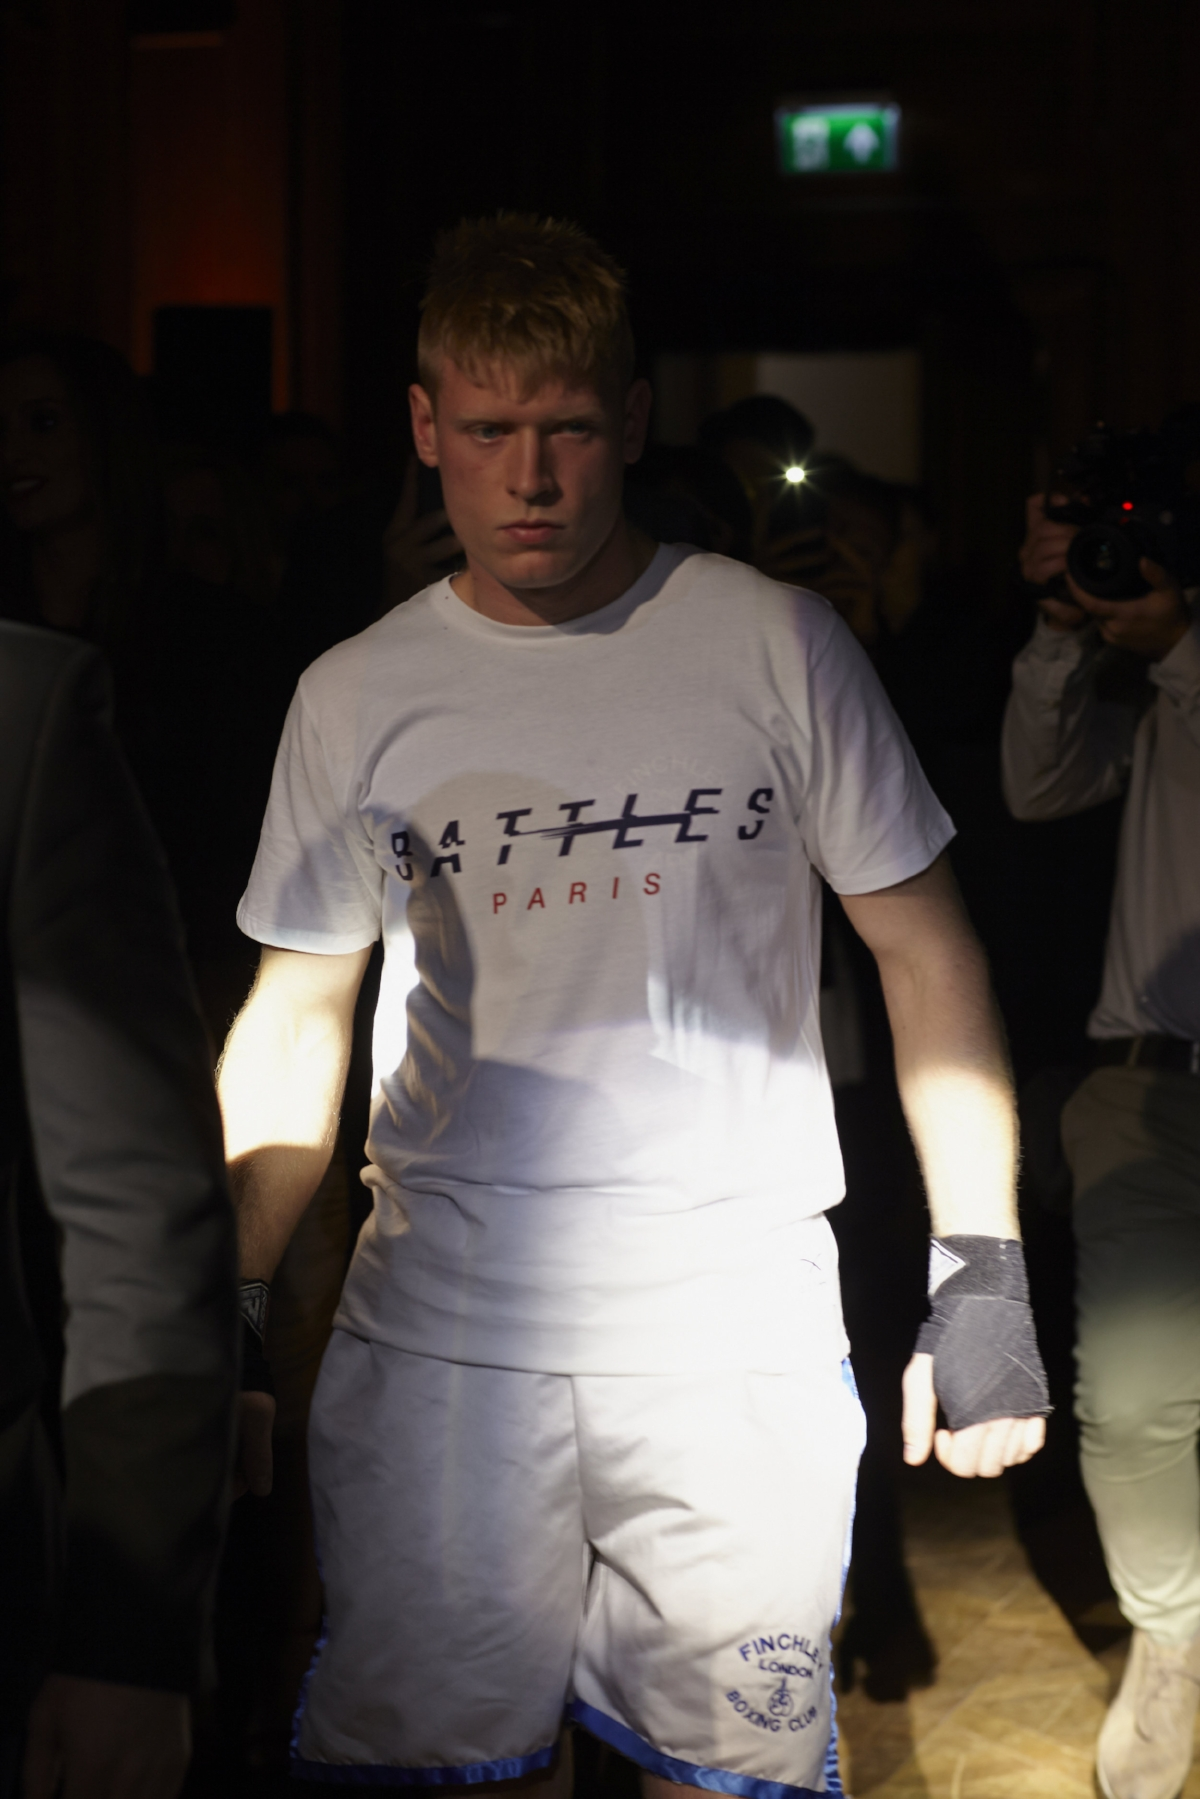 Gardener Jack Johnstone, a former MMA fighter training at Finchley ABC, walks in wearing our 'Dempsey' T-shirt in Battles of Paris livery